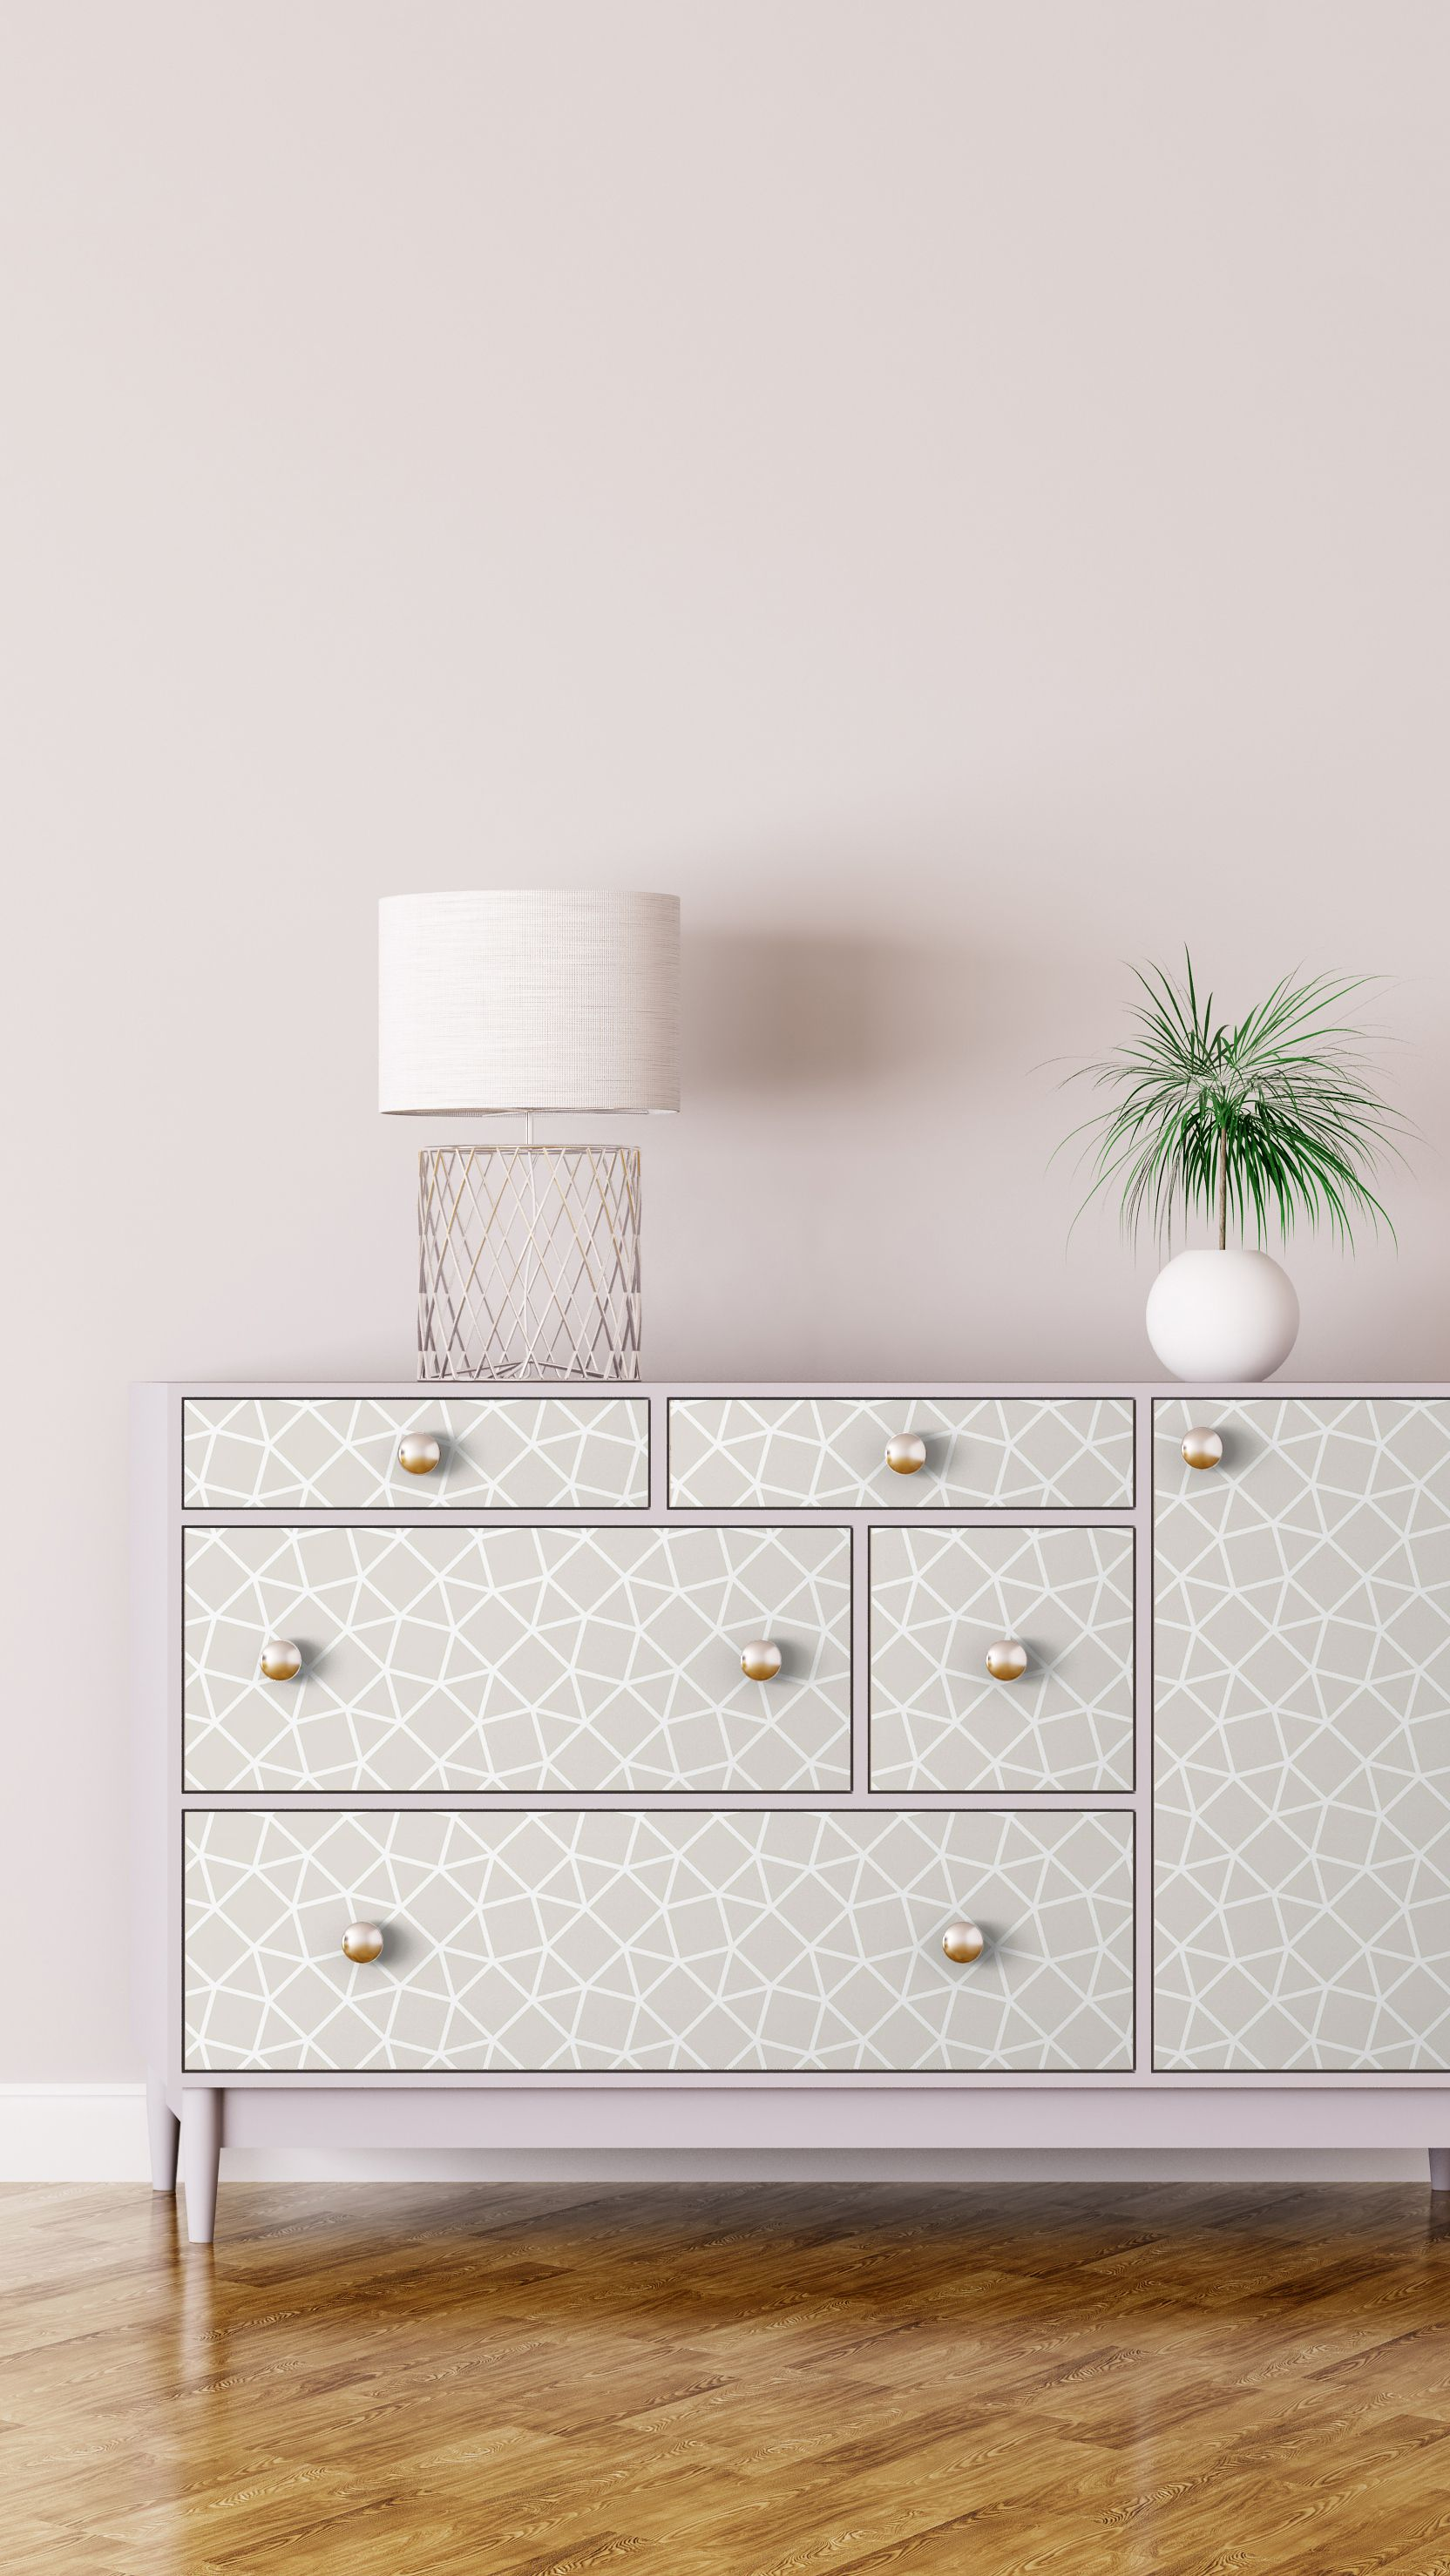 Beyond The Wall 5 Creative Uses Of Peel And Stick Wallpaper Quick Diy Furniture Peel And Stick Wallpaper Vintage Tile